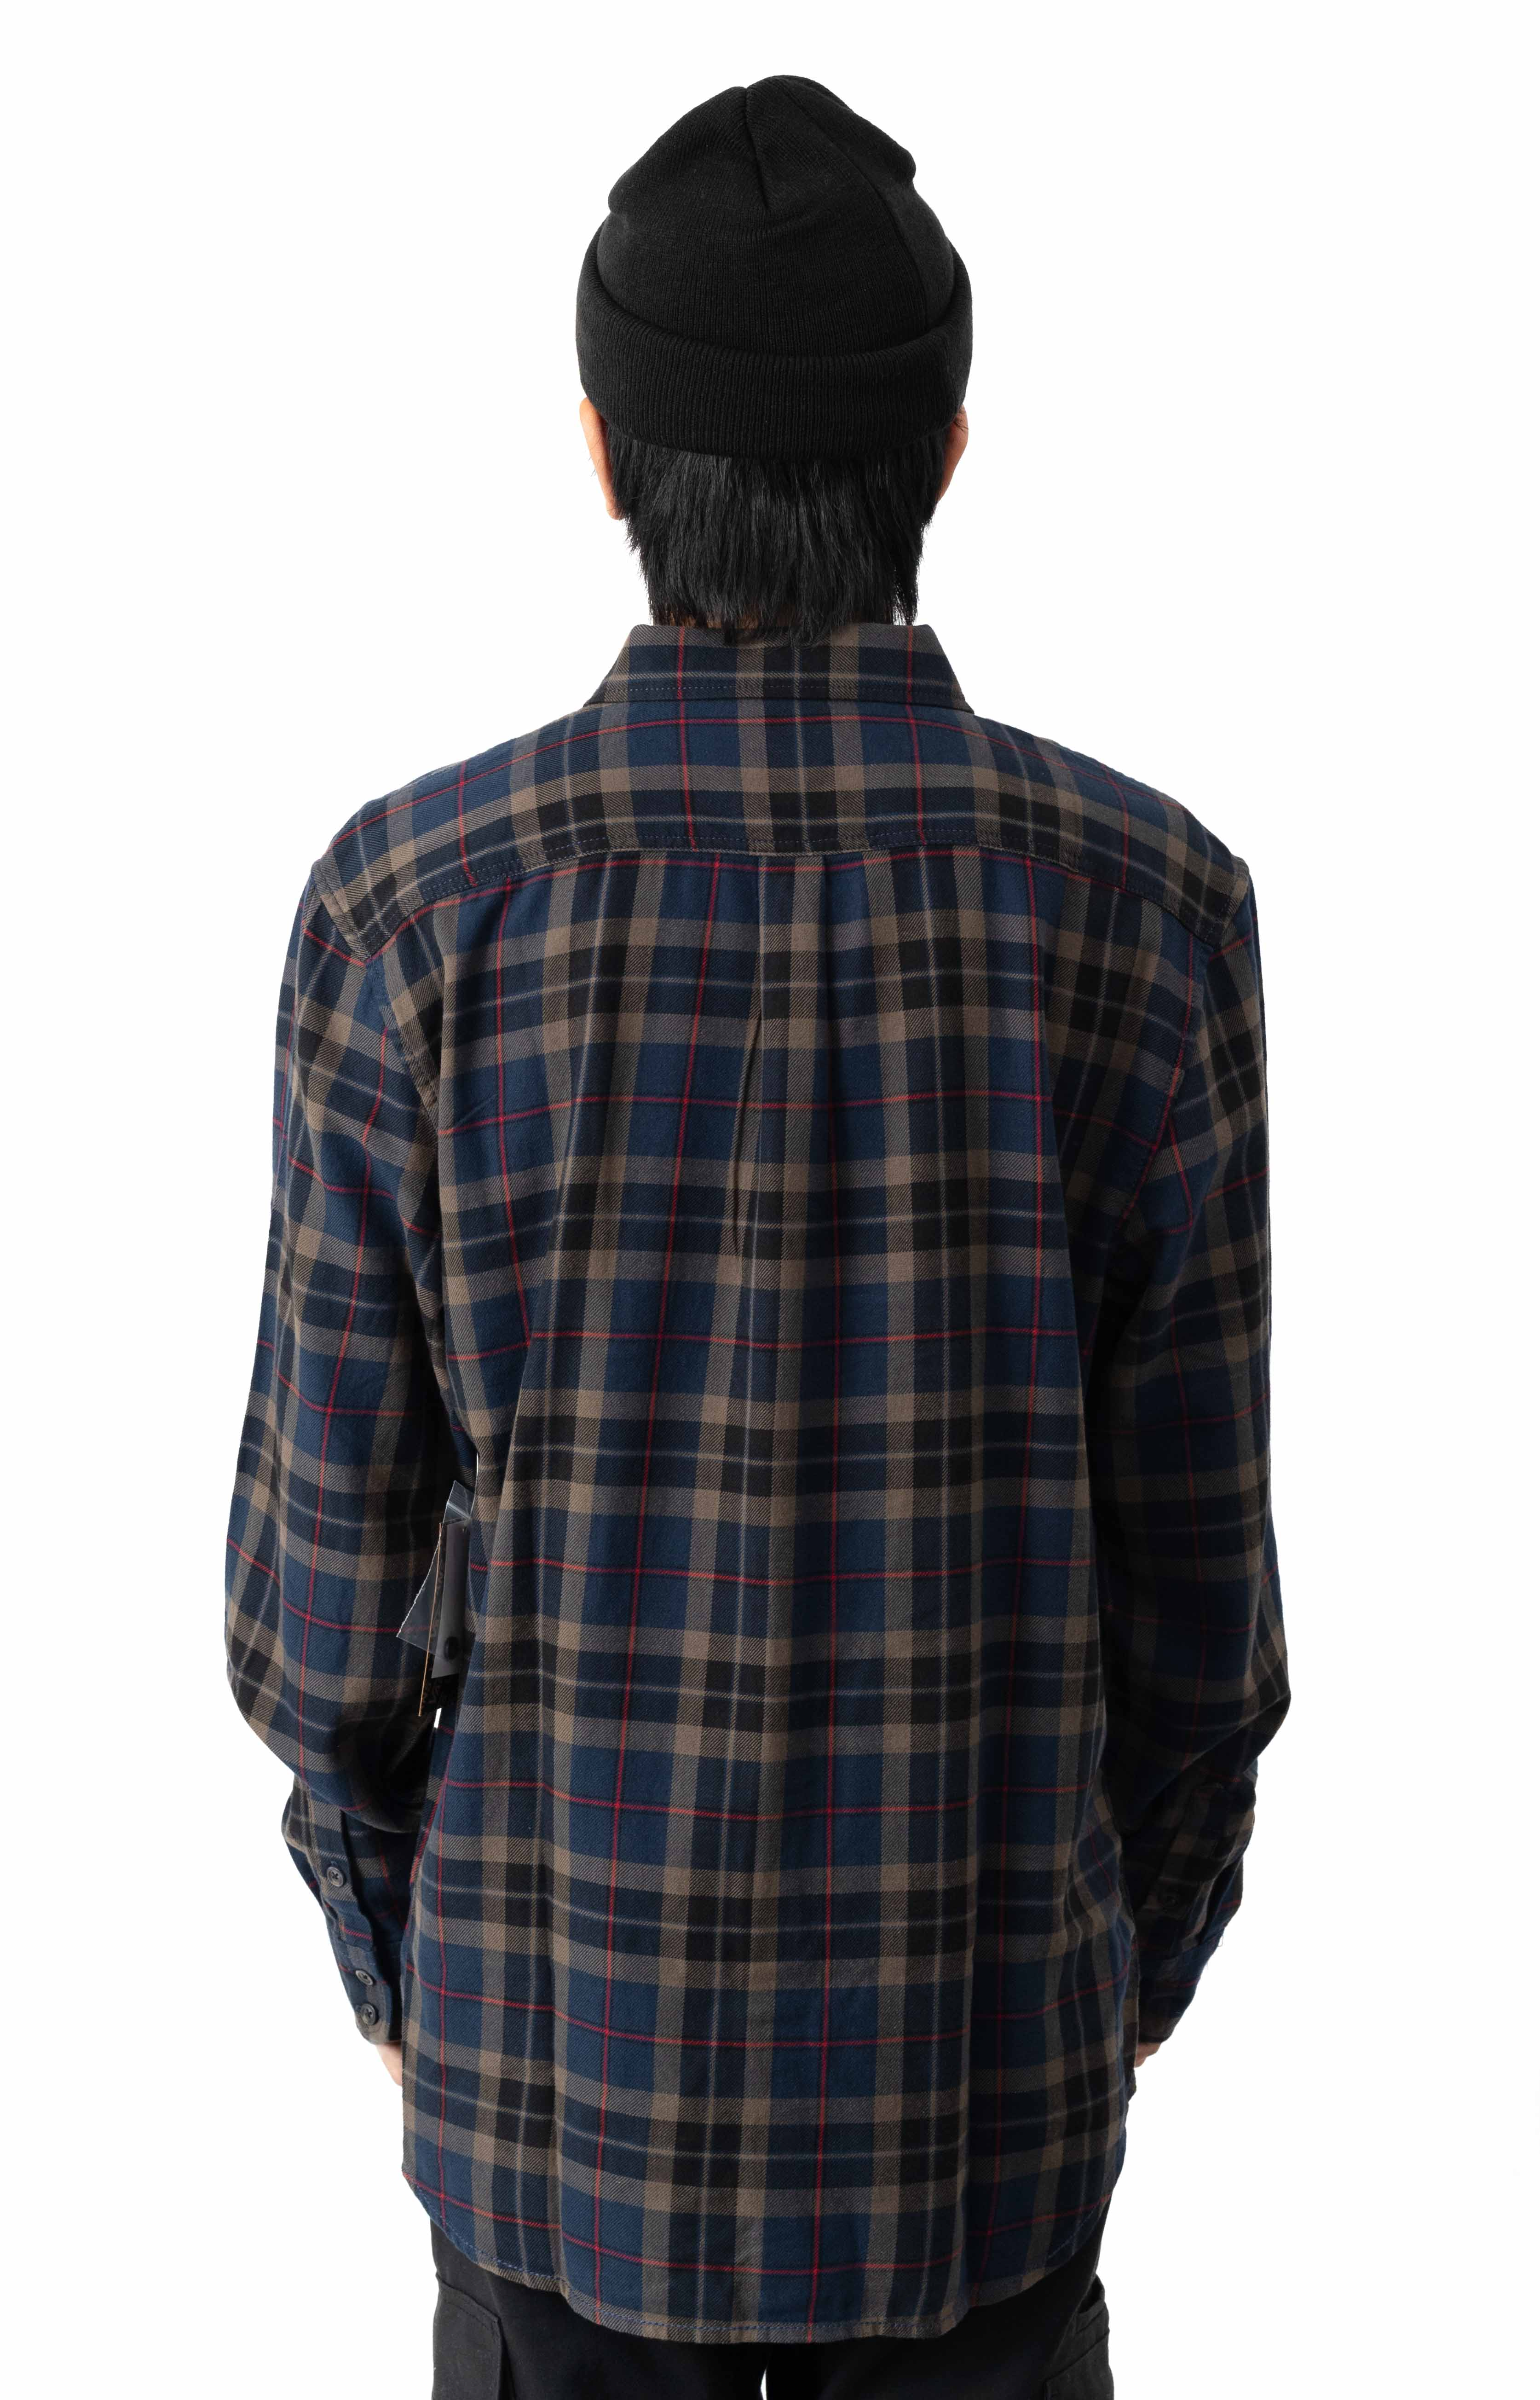 Sycamore Button-Up Shirt - Dress Blues/Canteen  3